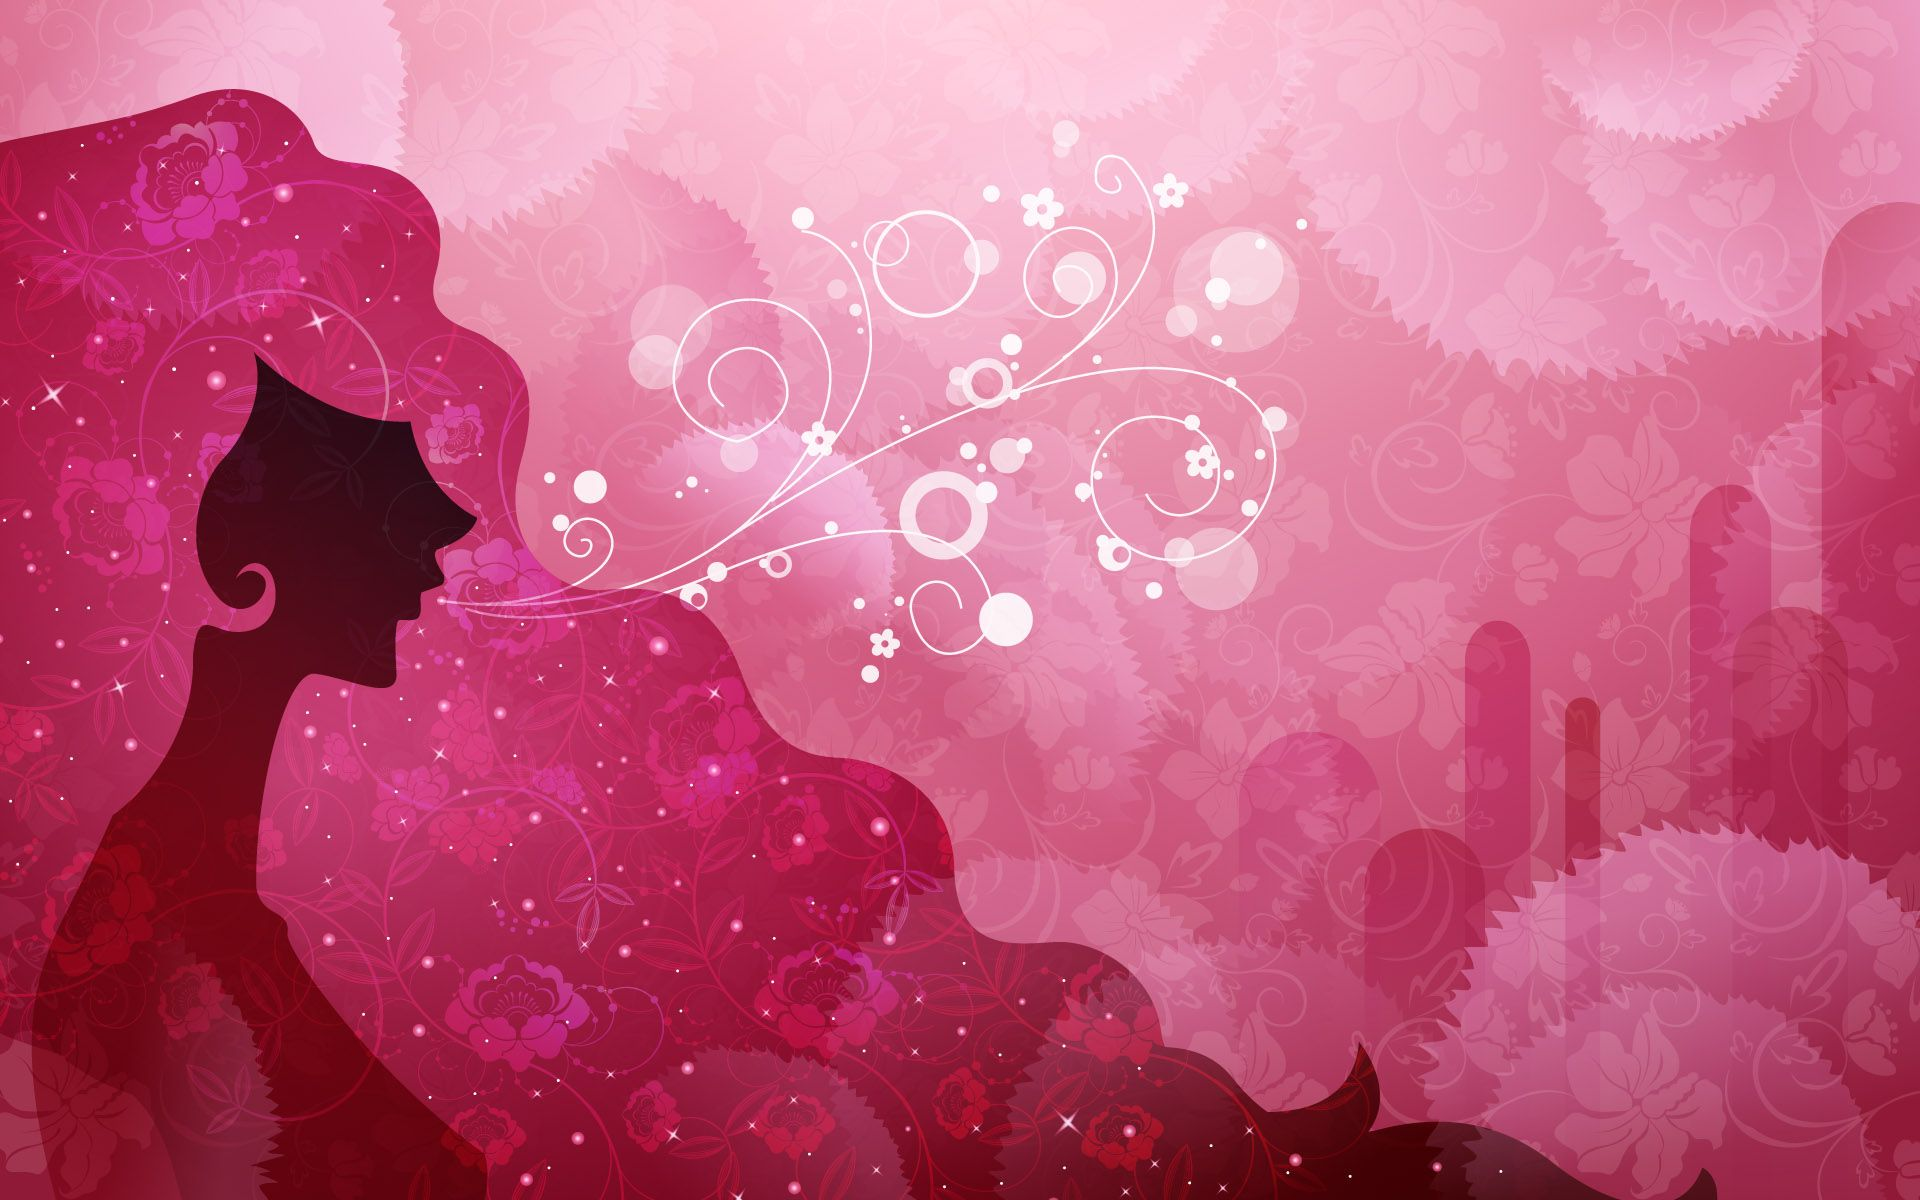 Pink Backgrounds For Girls 19201200 124069 HD Wallpaper Res 1920x1200